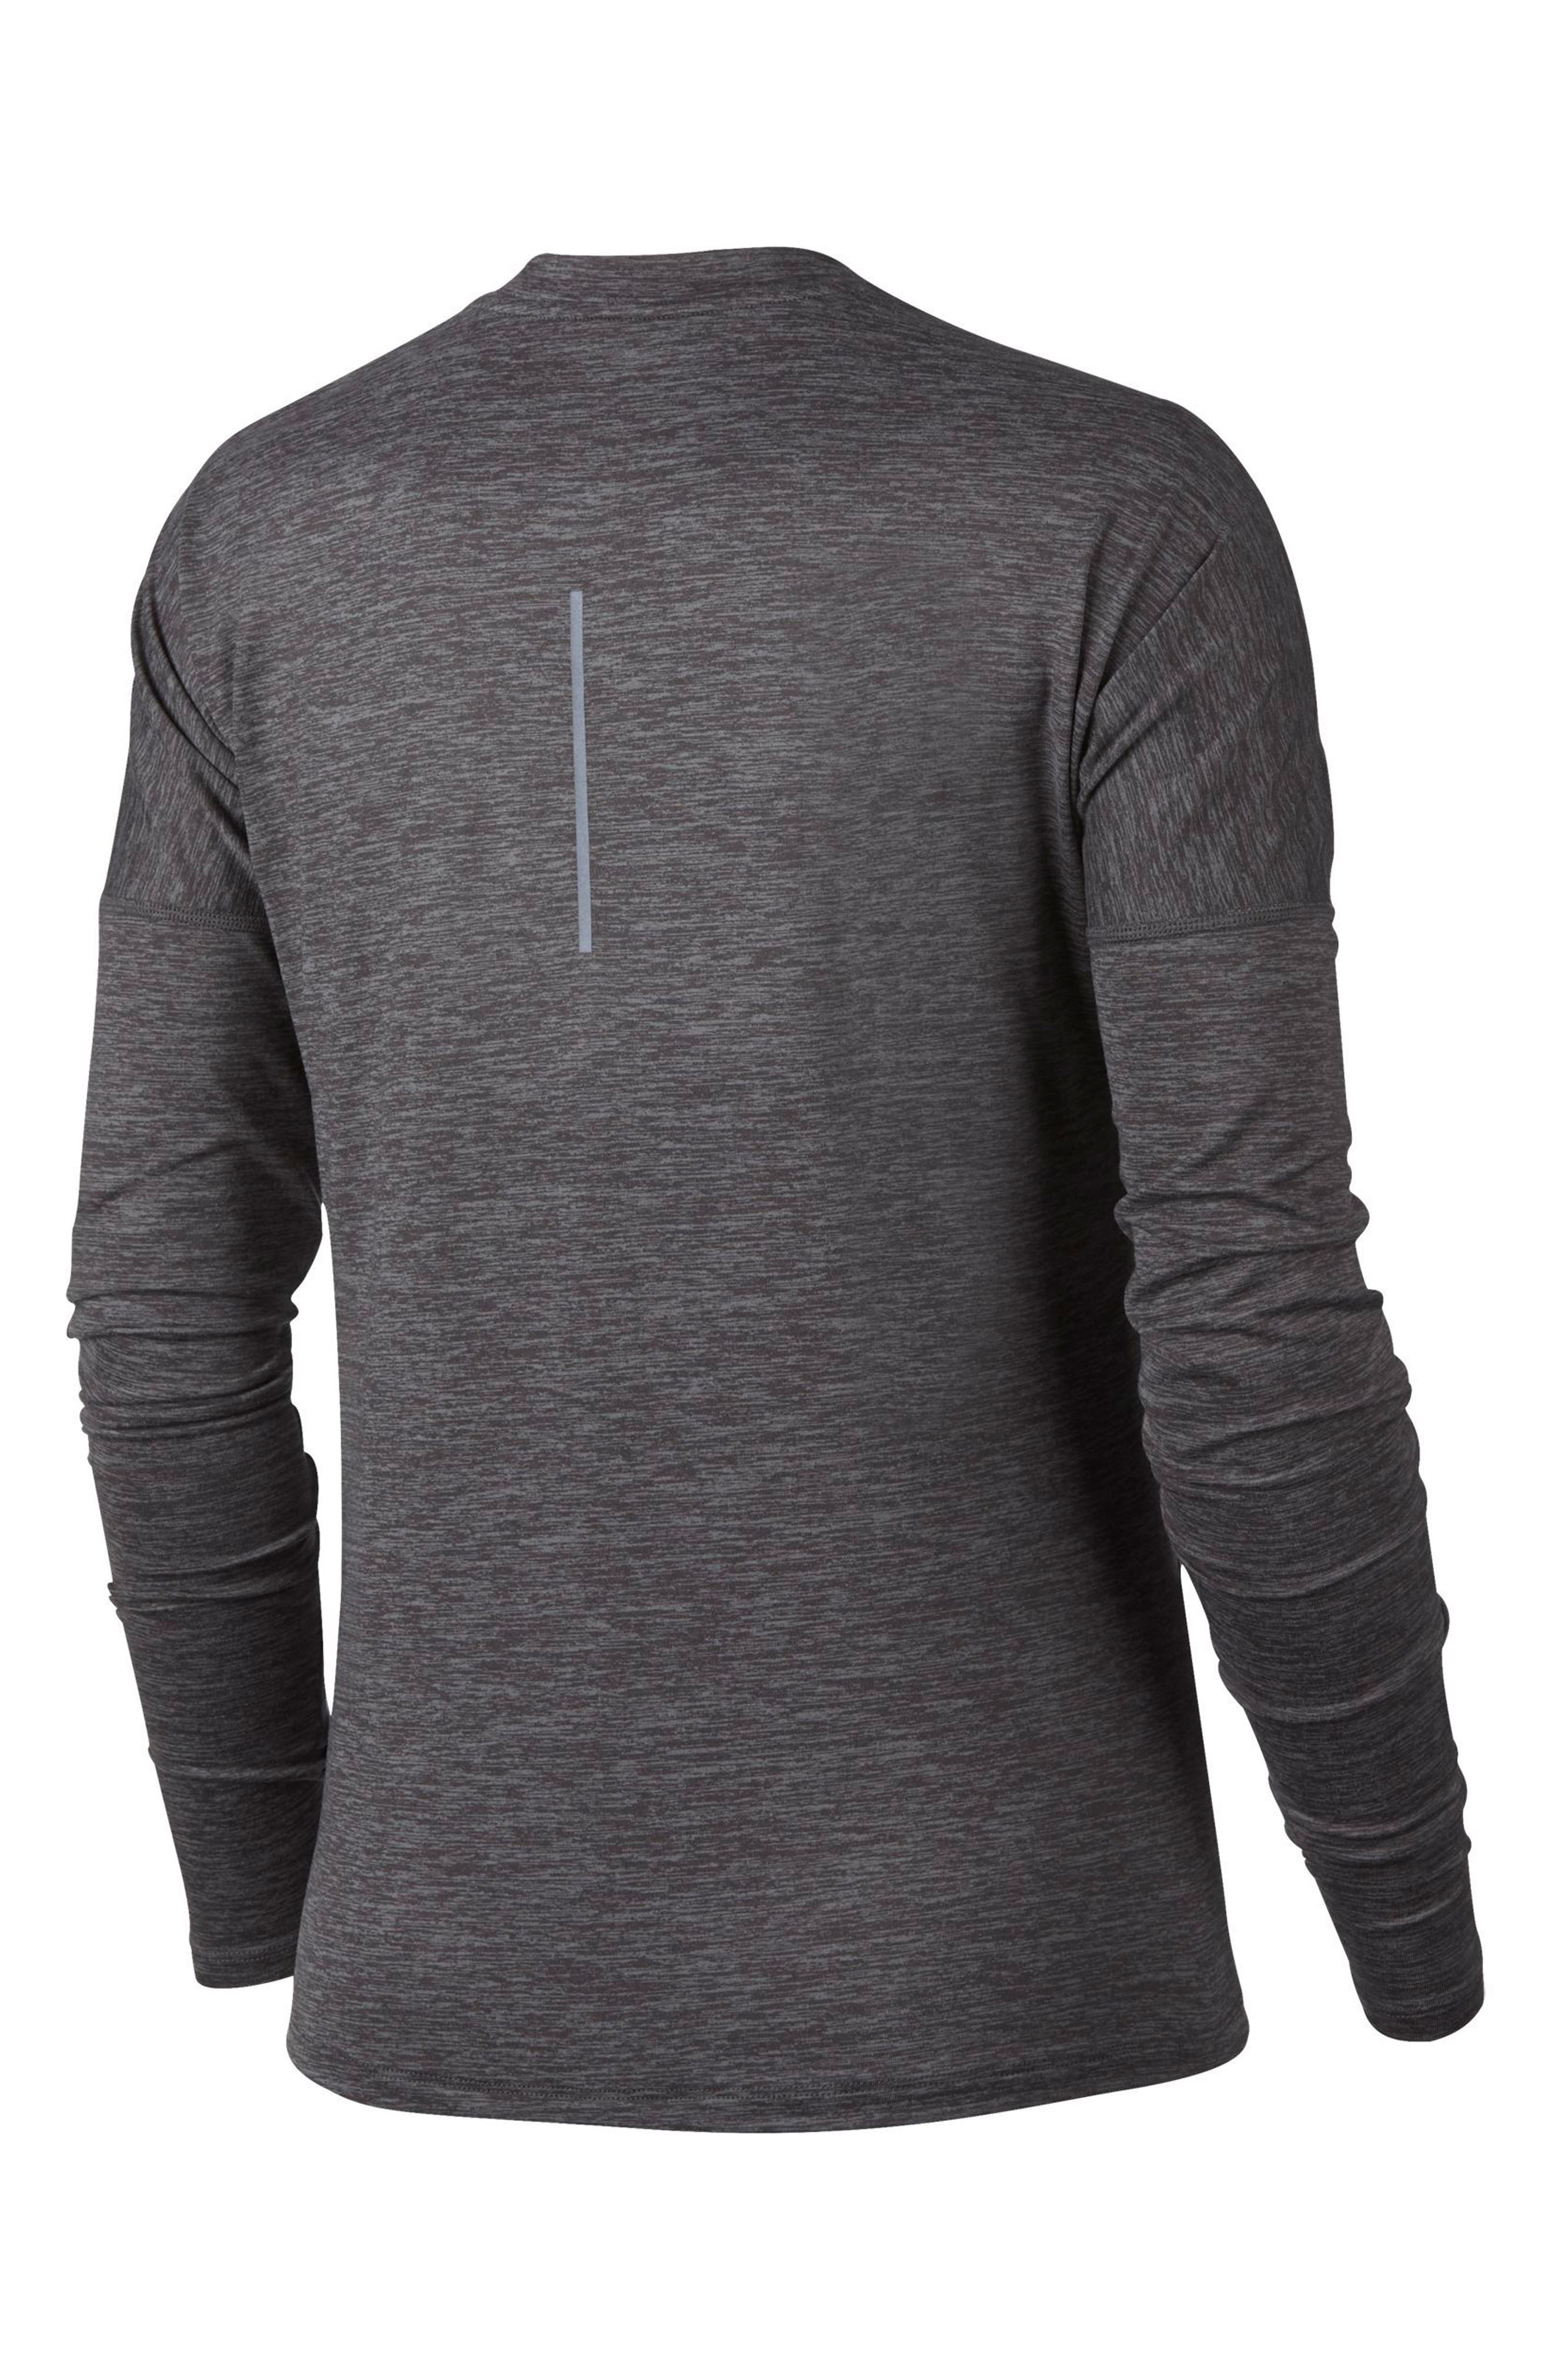 NIKE,                             Dry Element Long Sleeve Top,                             Alternate thumbnail 9, color,                             036